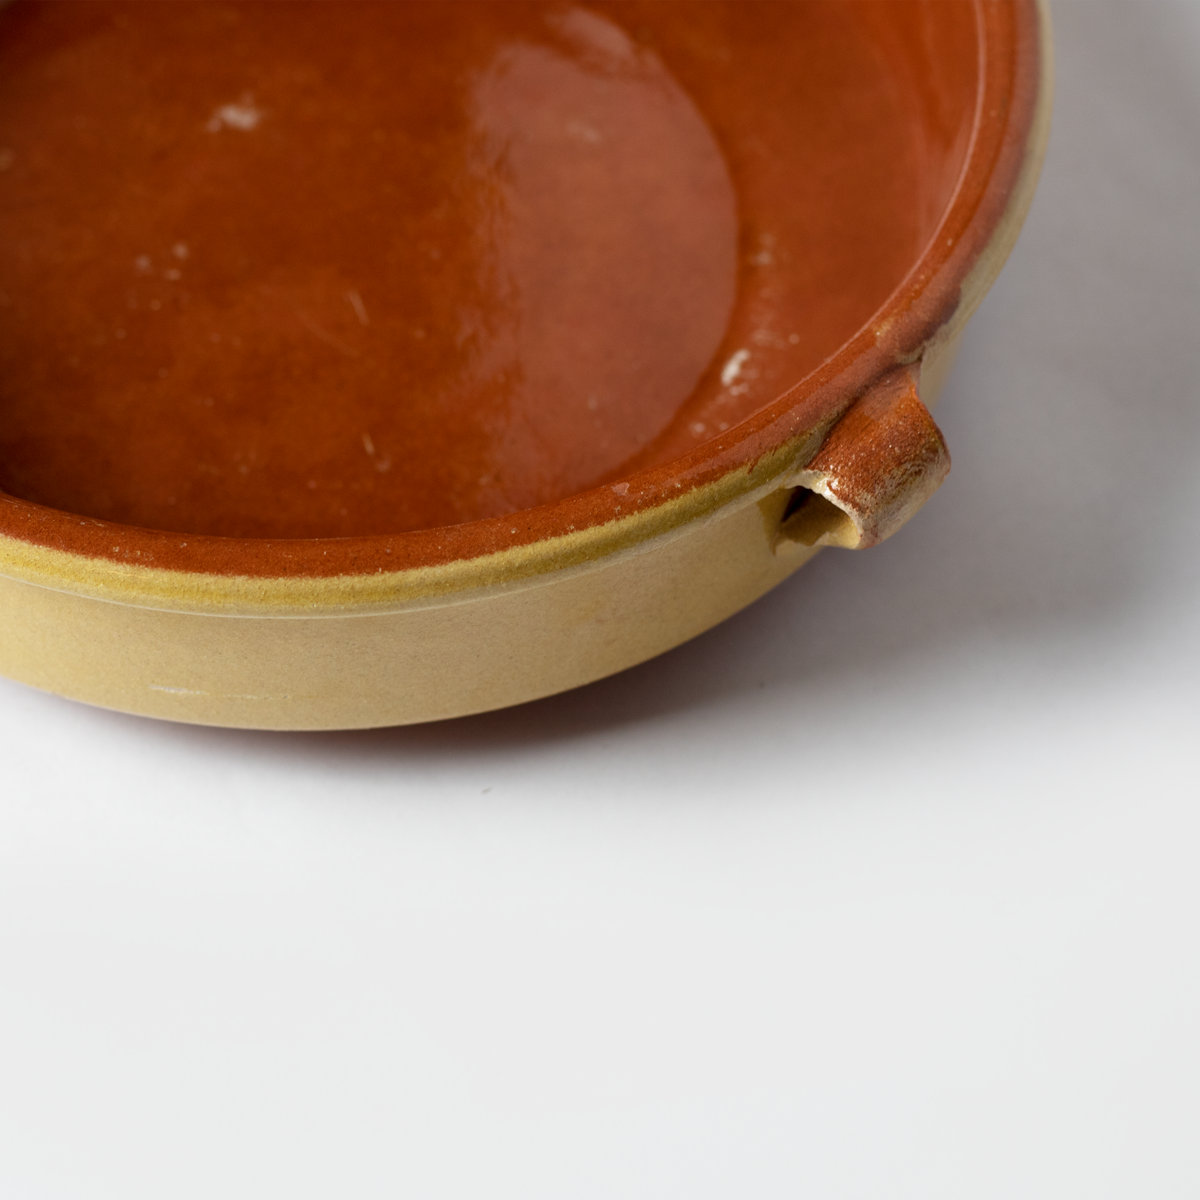 Yellow Terracotta Serving Dish